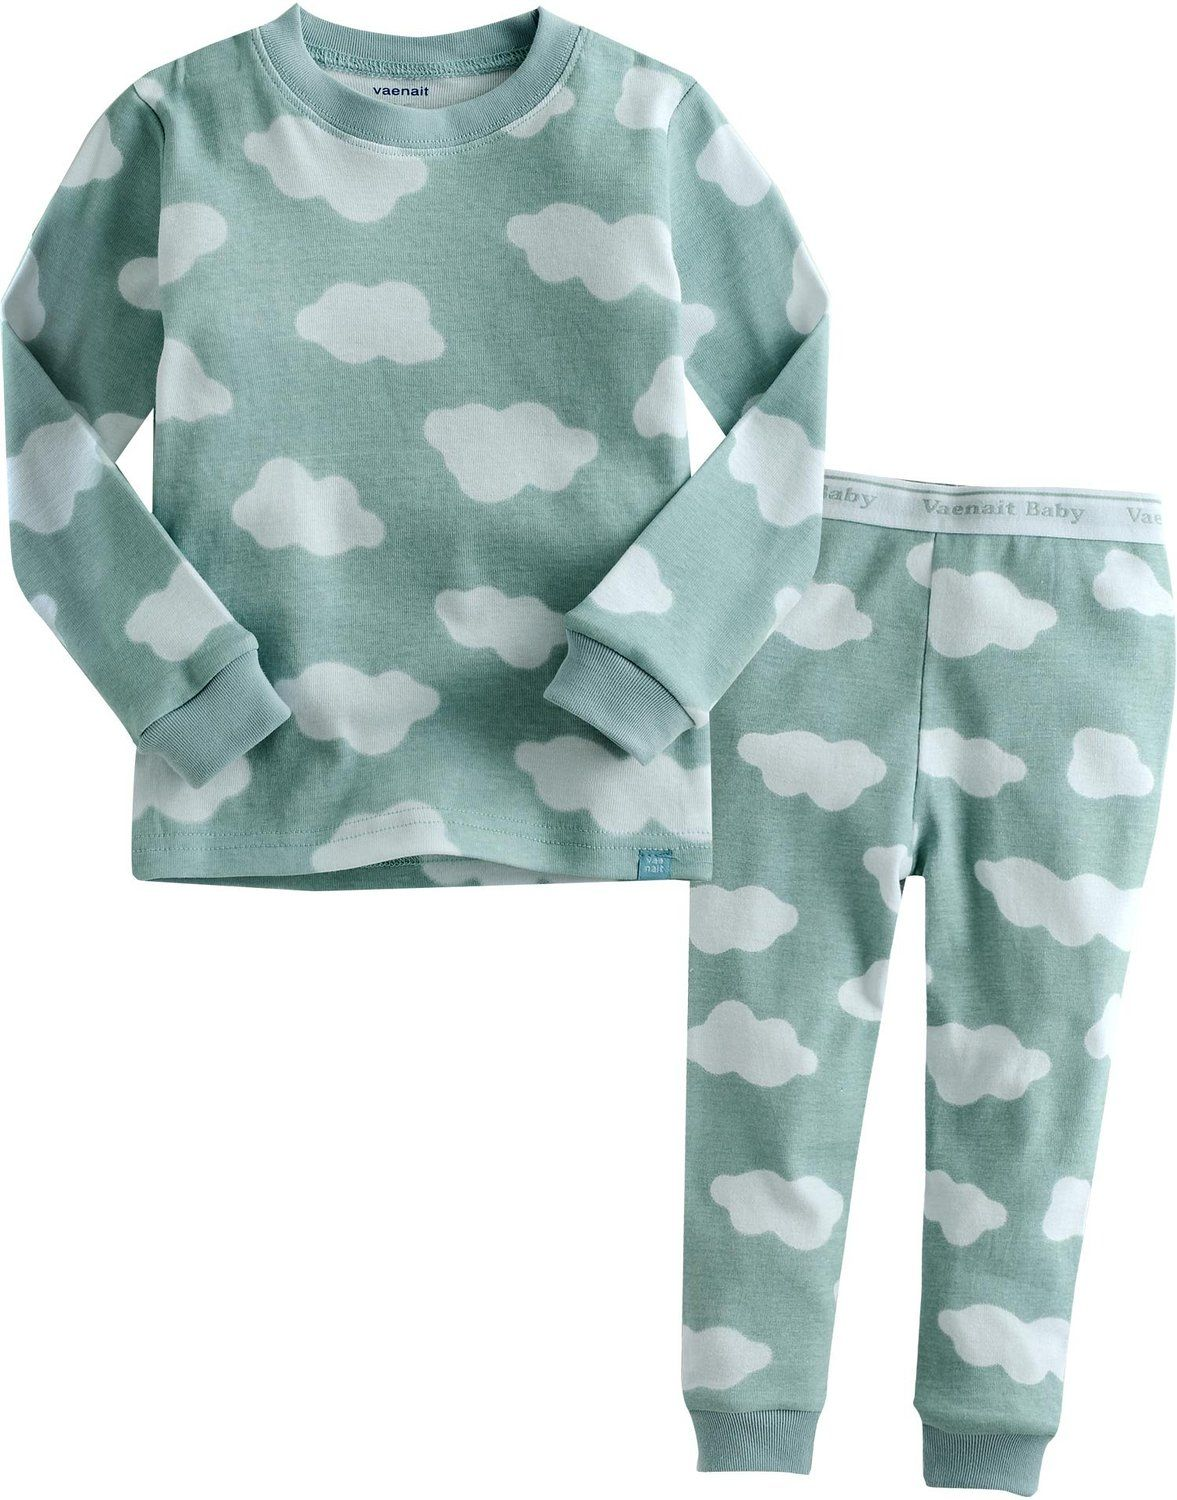 amazon com vaenait baby m t kids boys sleepwear pajama top amazon com vaenait baby 12m 7t kids boys sleepwear pajama top bottom 2